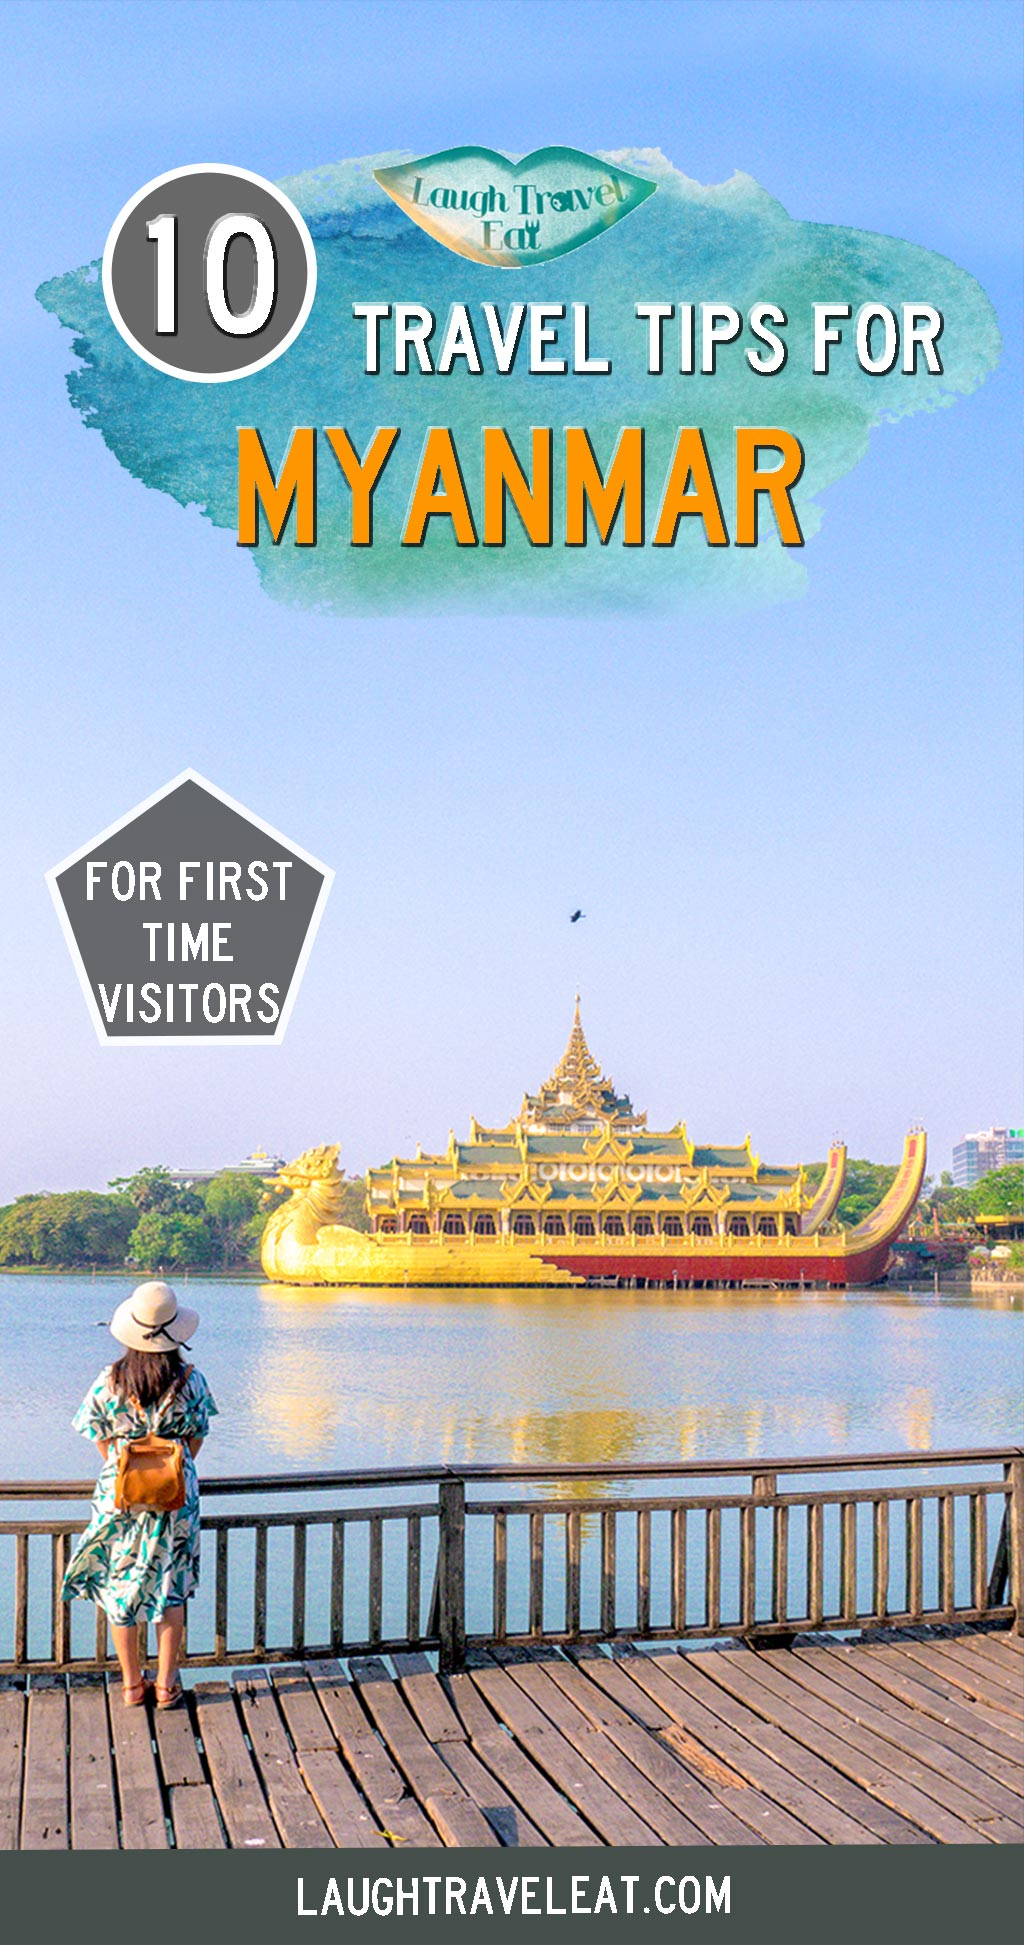 Myanmar is a country that is comparatively new on tourist's radar. With many travel information out of date, here's my Yangon top tips: #yangon #myanmar #traveltips